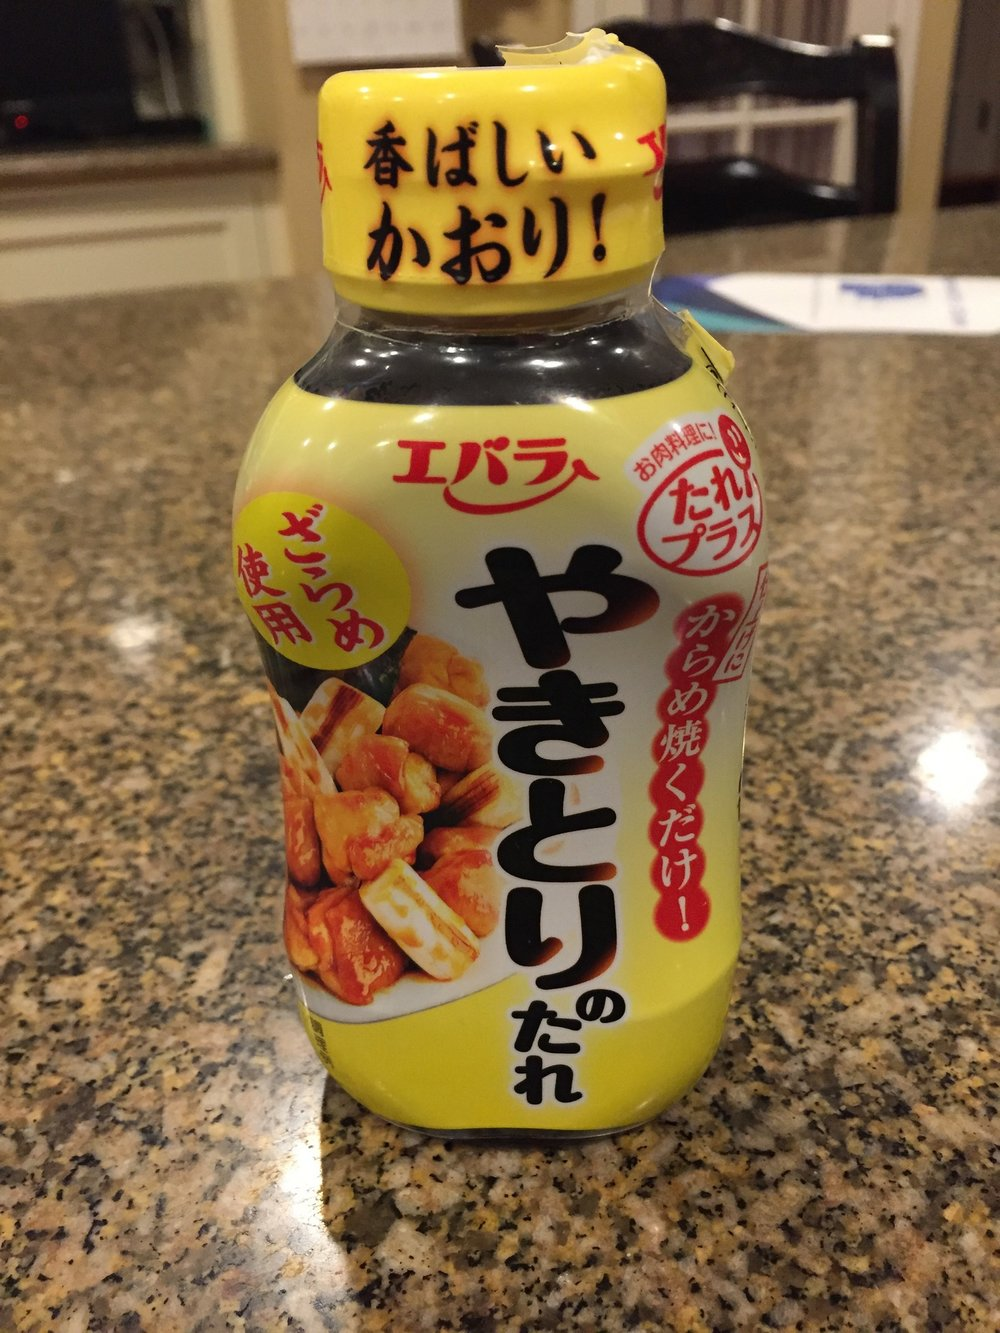 """I ordered this Ebara """"Yakitori No Tare"""" sauce on Ebay from Japan. Some local Asian markets may have this, or similar. It's good, but not as good as the sauce you make yourself."""